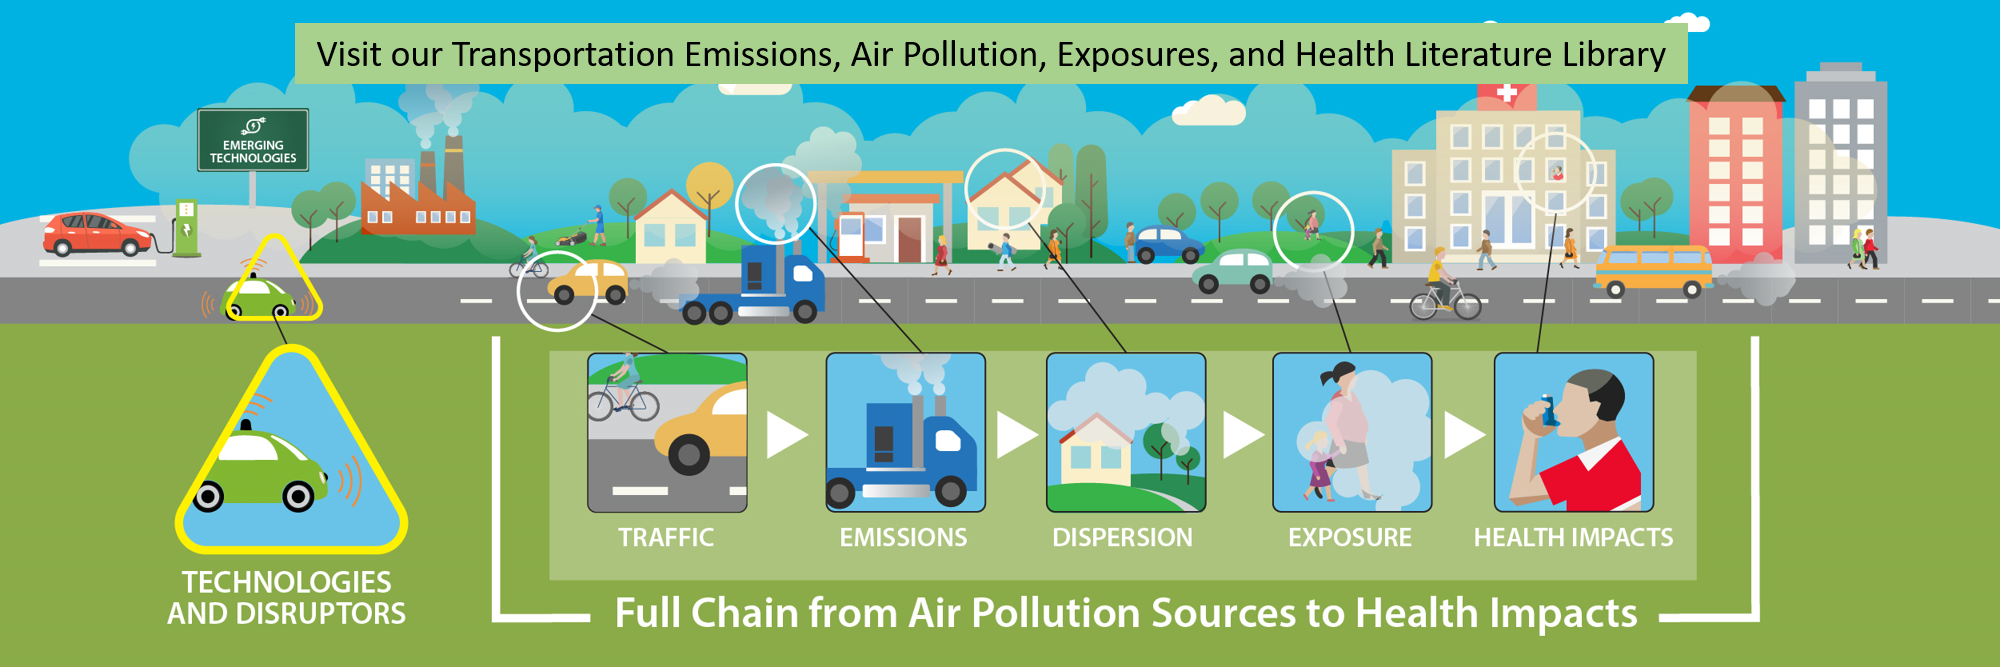 image of air pollution sources linking to literature library page